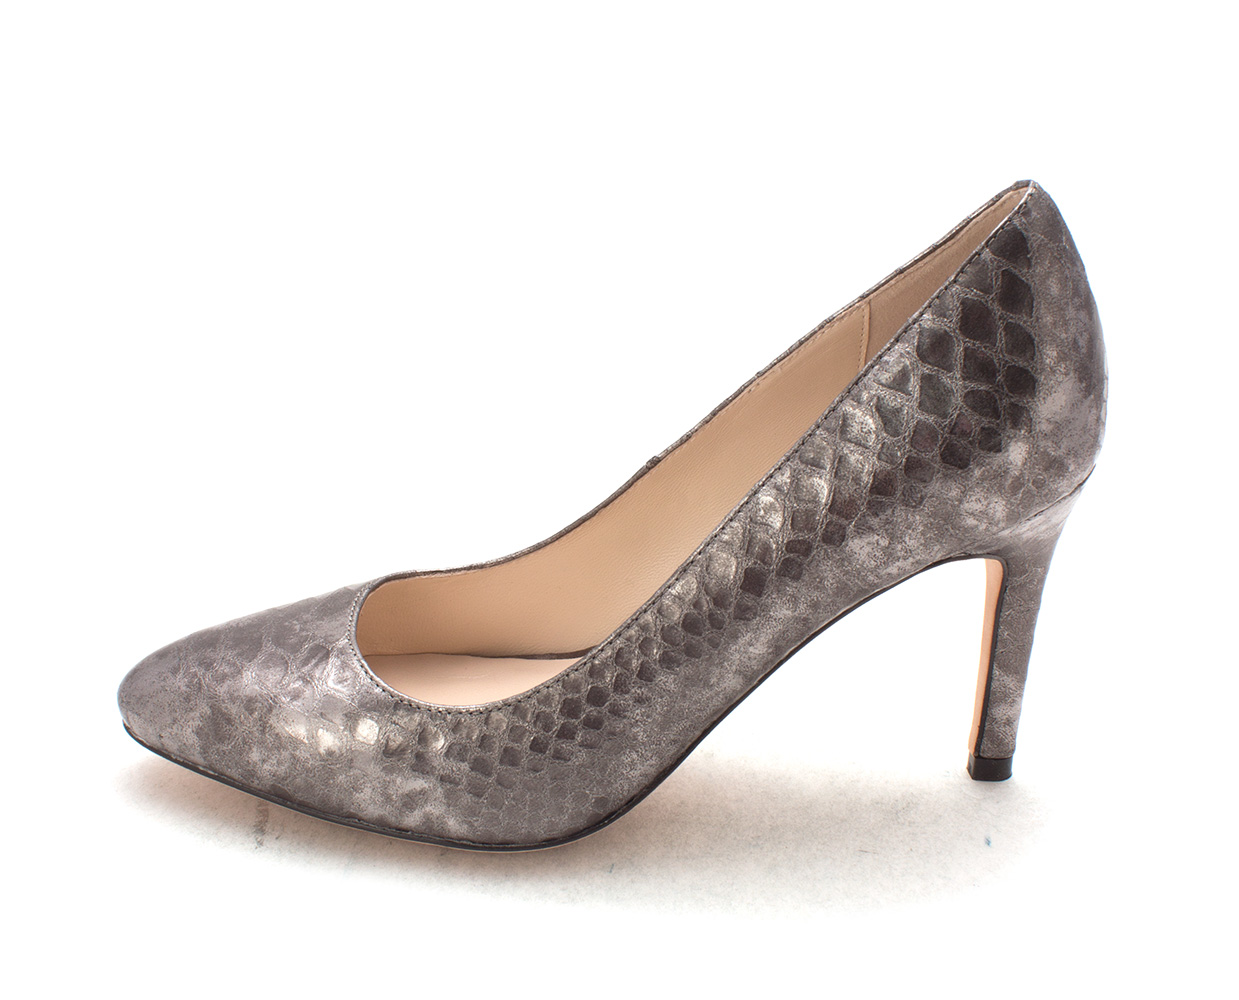 Cole Haan Womens 13A4166P Closed Toe Classic Pumps Dark Silver Size 6.0